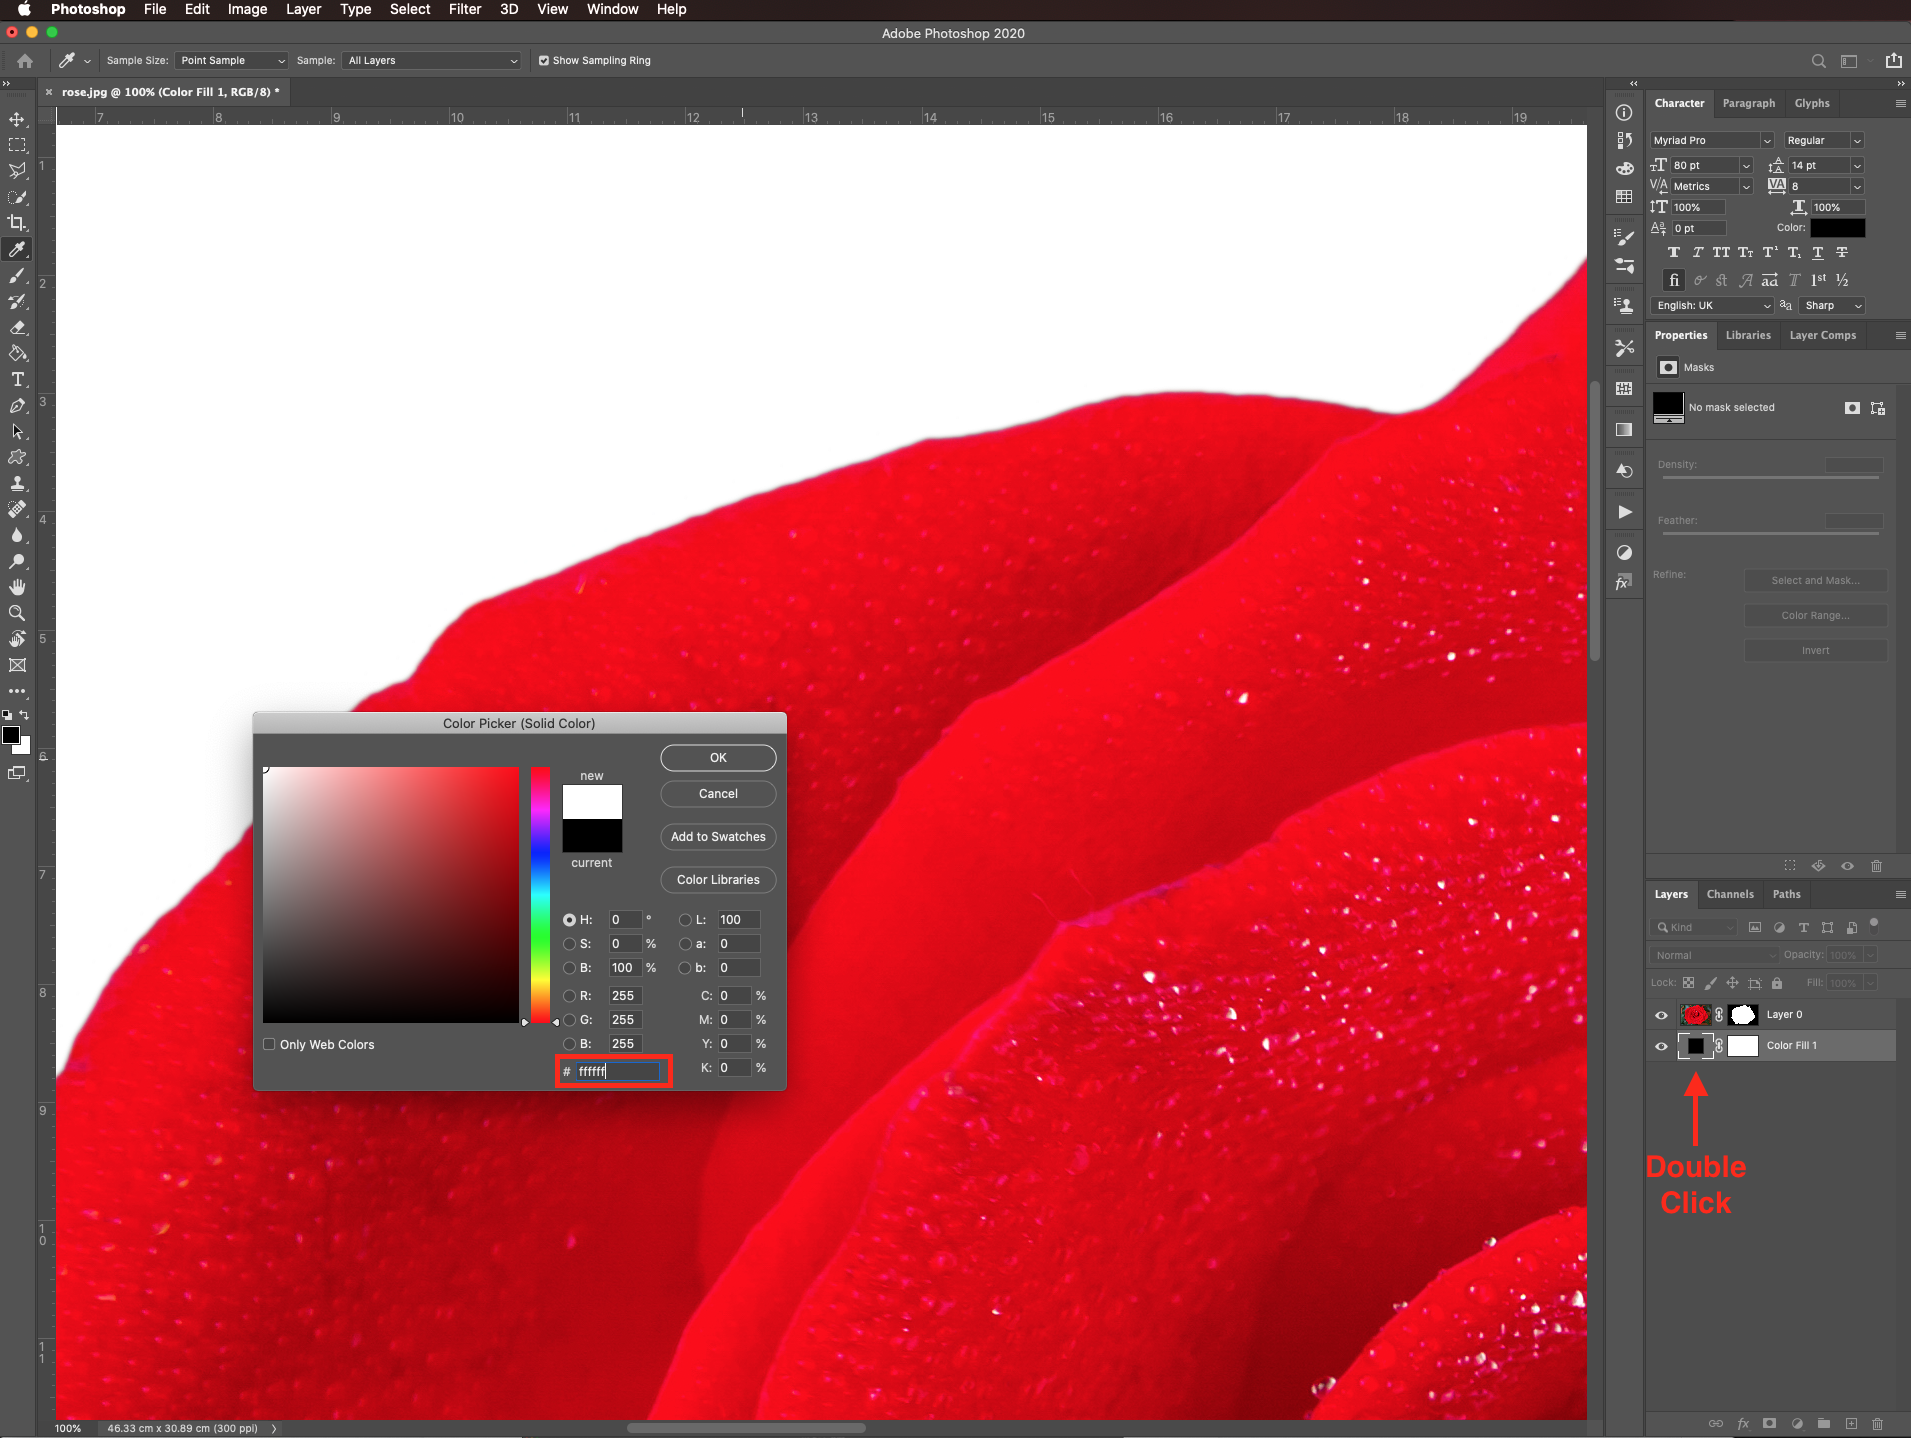 Change color in Photoshop